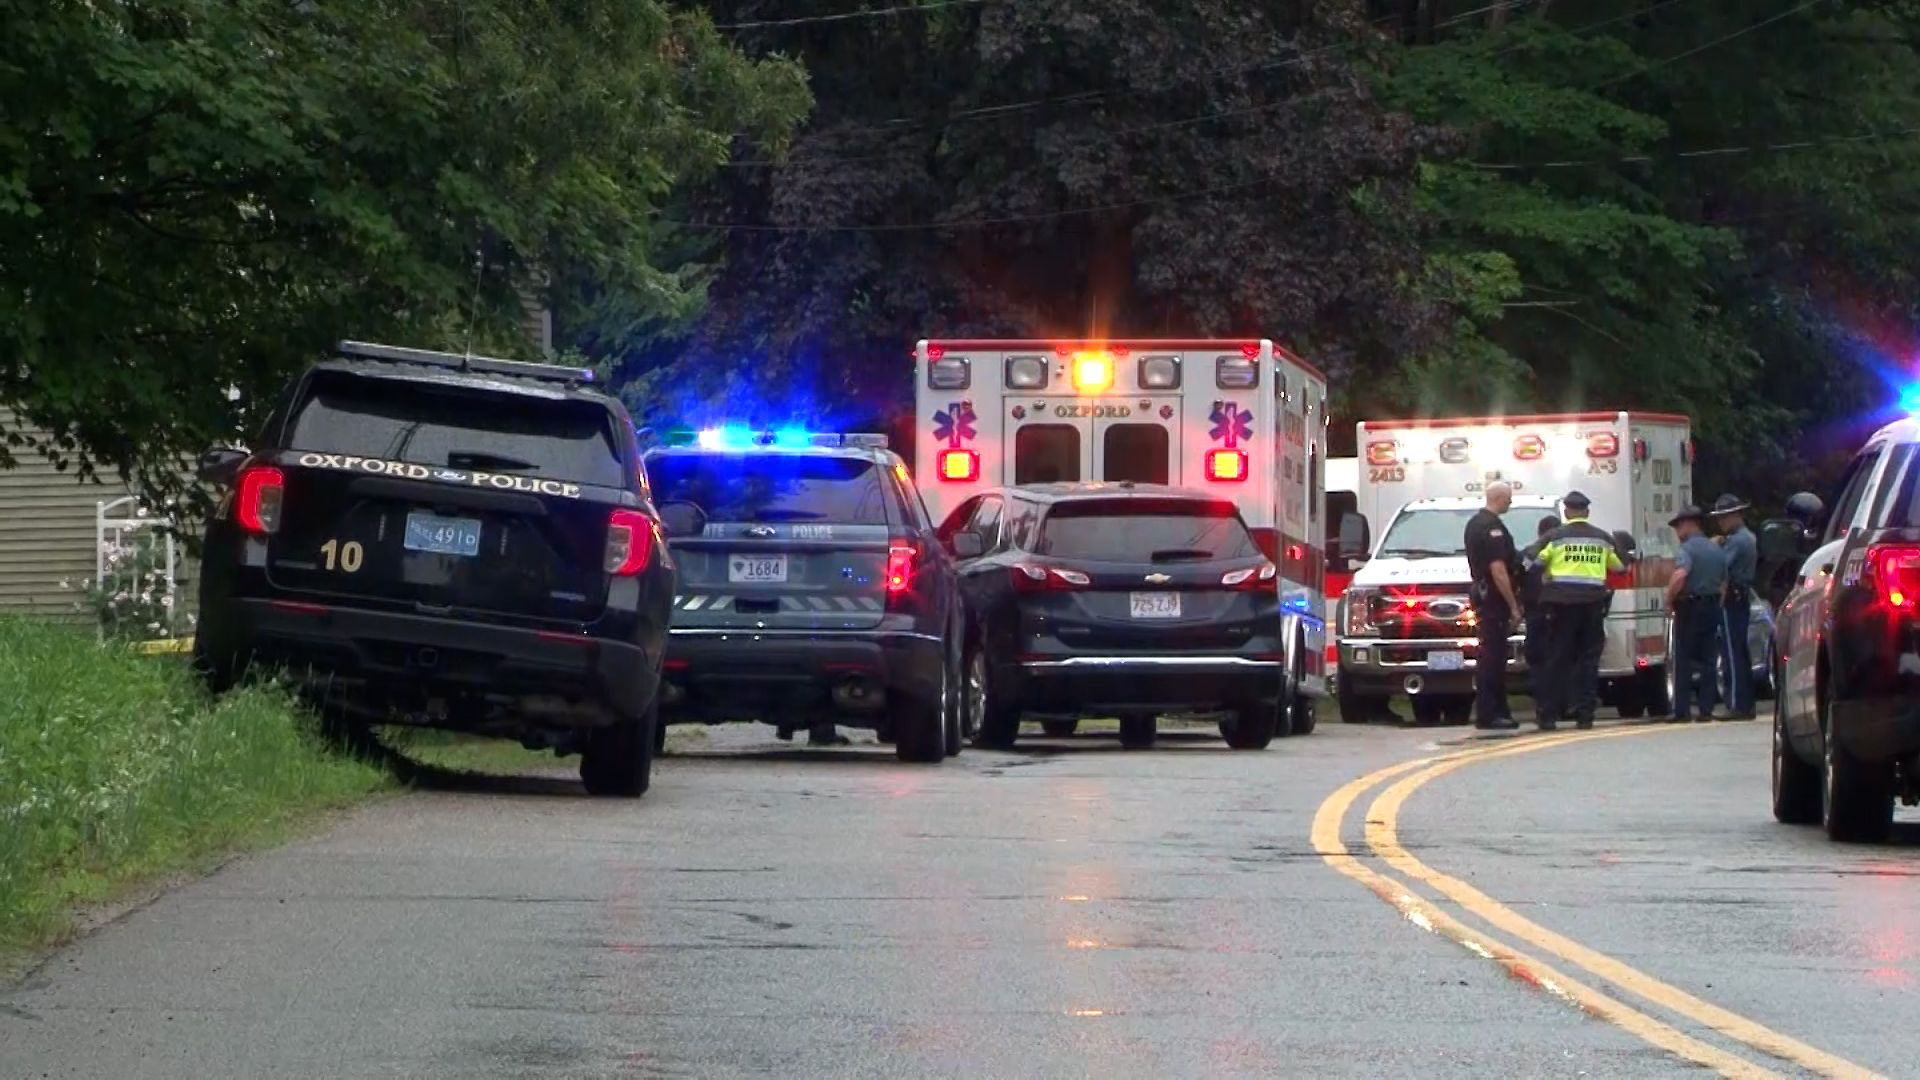 Dead couple's children in home during apparent murder-suicide in Oxford, DA says